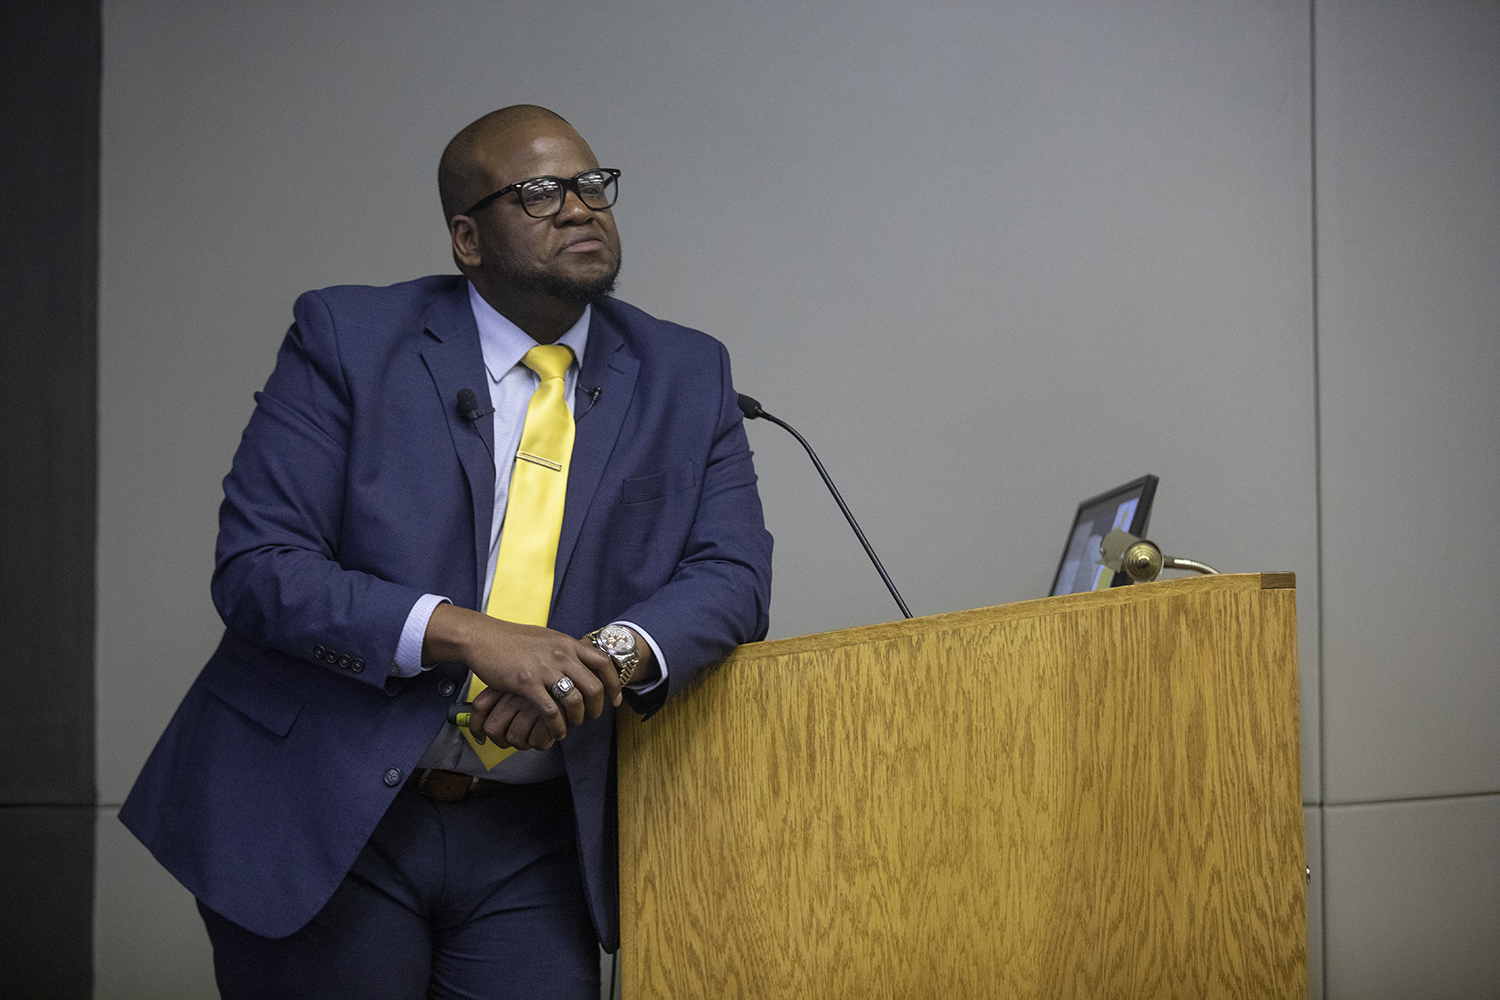 MUSC Executive Director of Student Programs and Student Diversity TaJuan Wilson speaks during the forum for the associate vice presidency of diversity, equity, and inclusion on March 25, 2019.